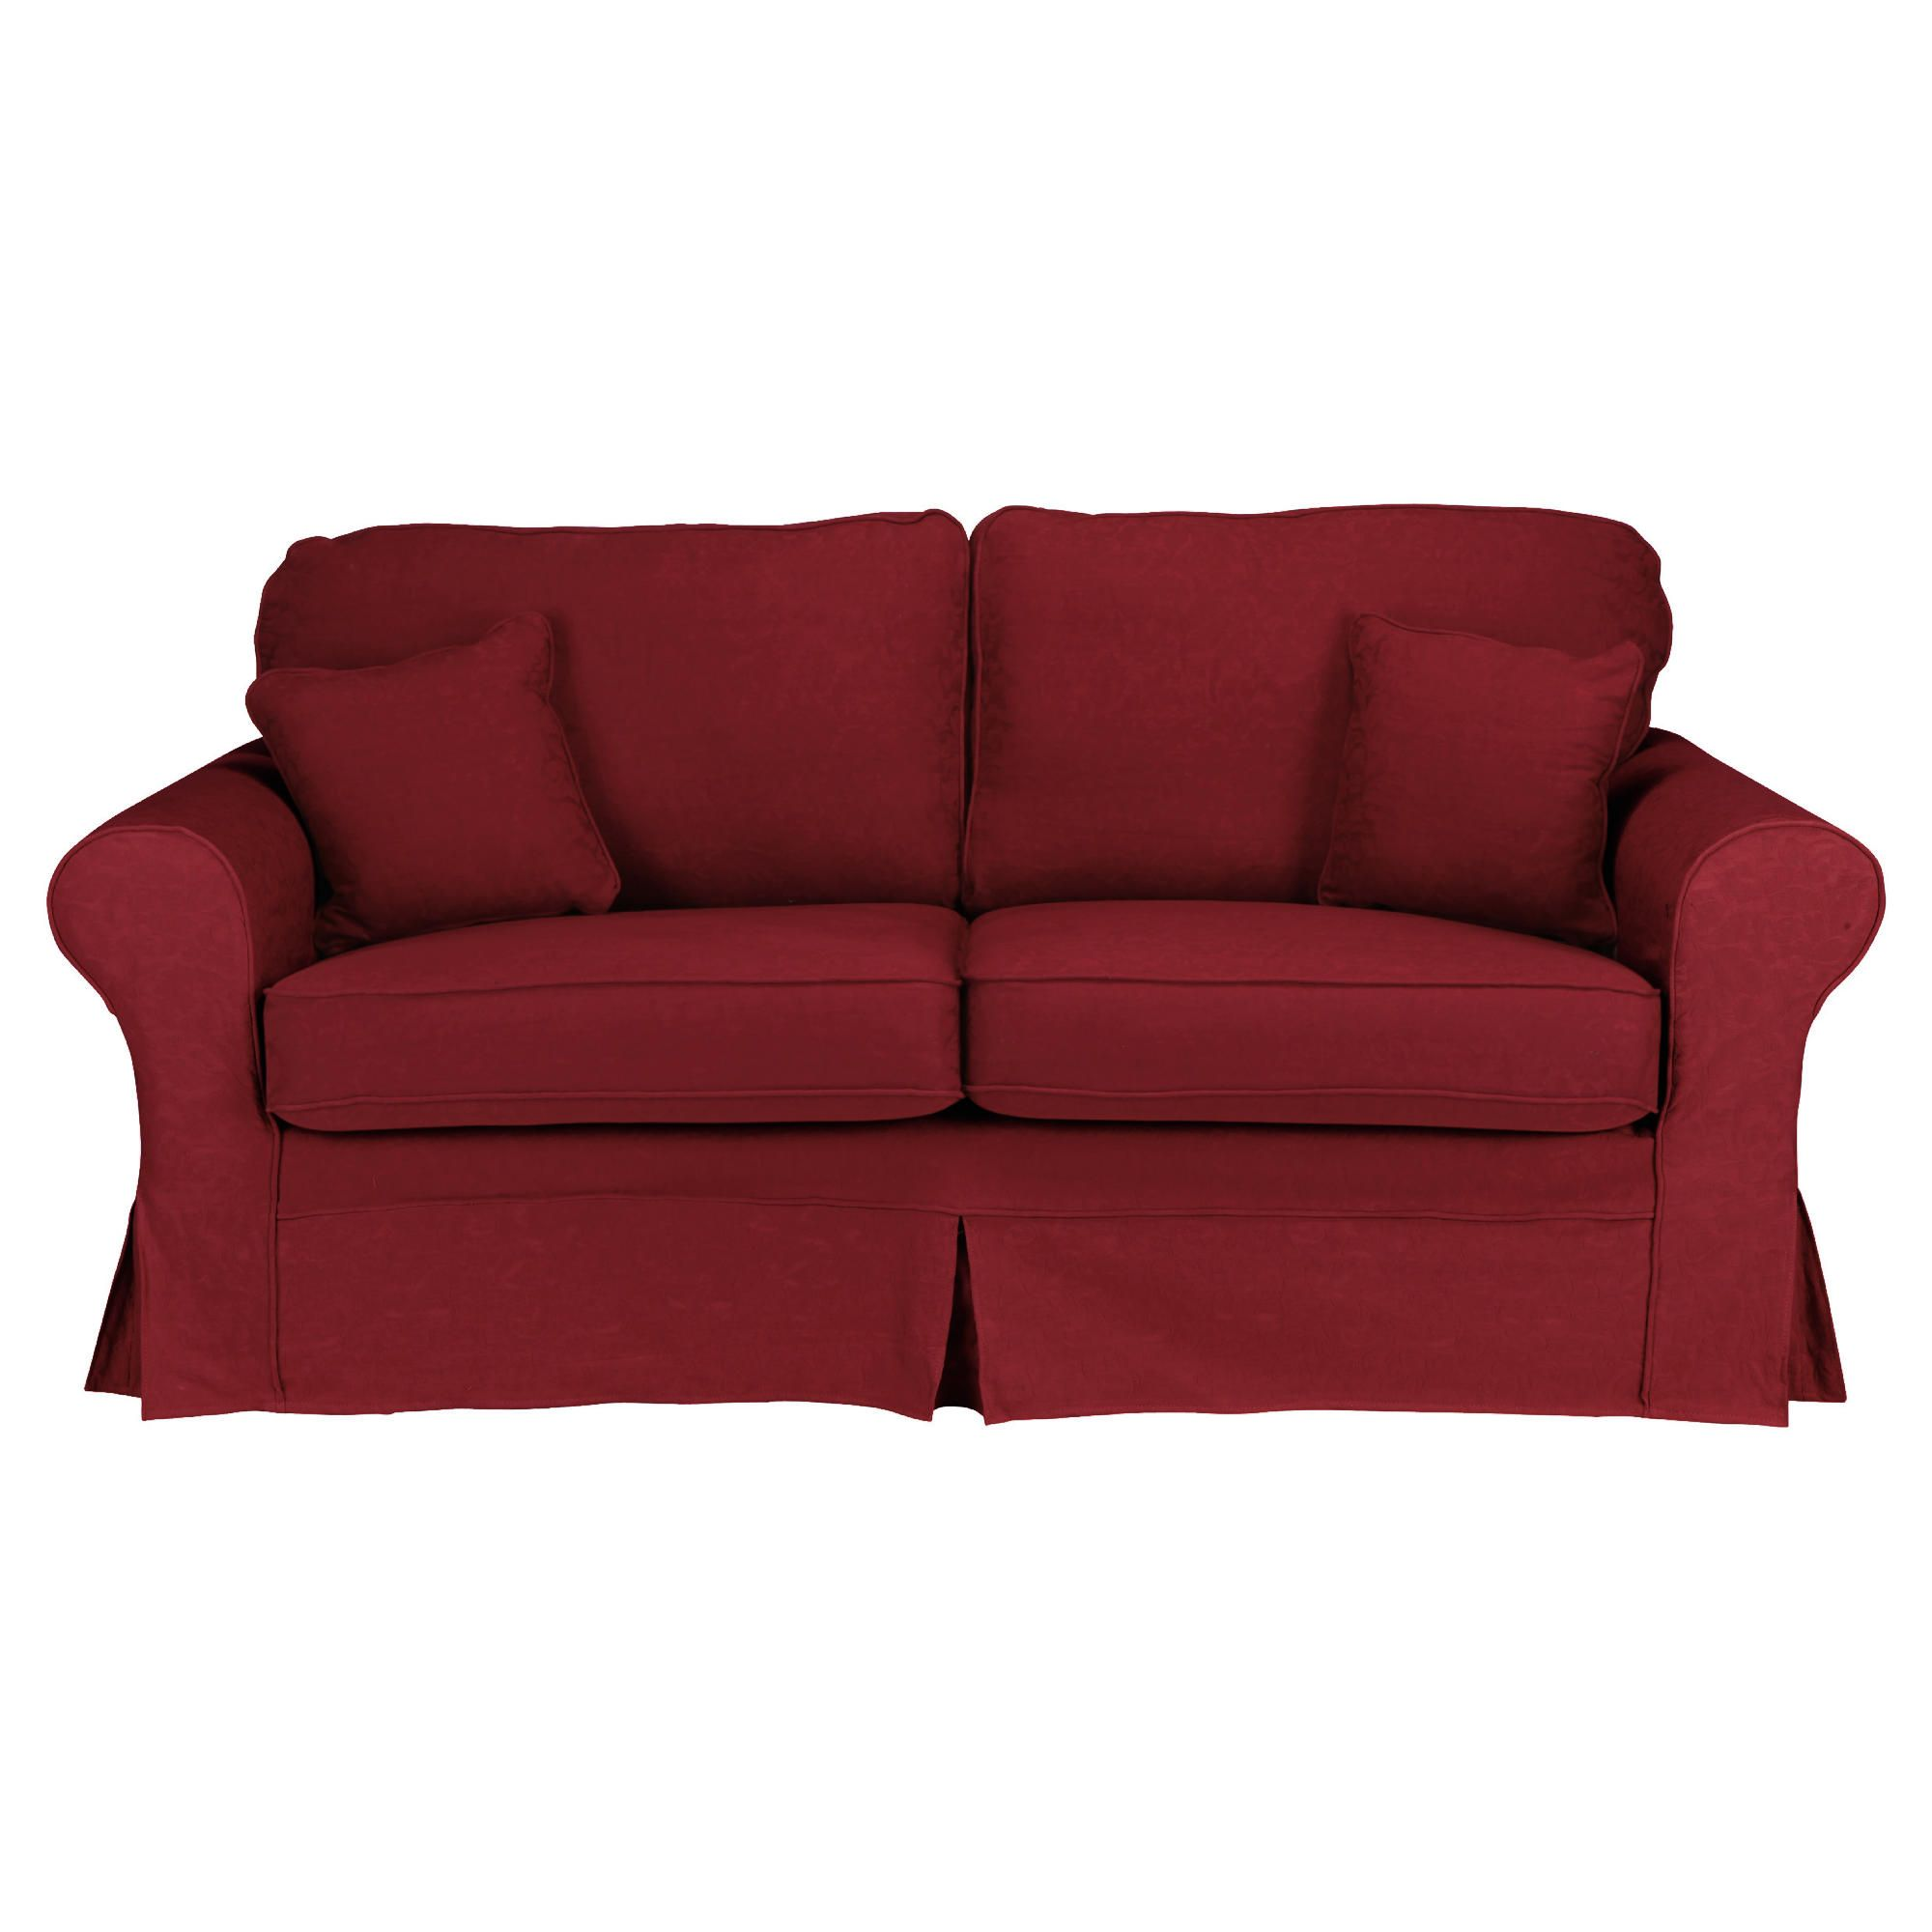 Louisa Medium Sofa with Removable Jaquard Cover, Wine at Tesco Direct